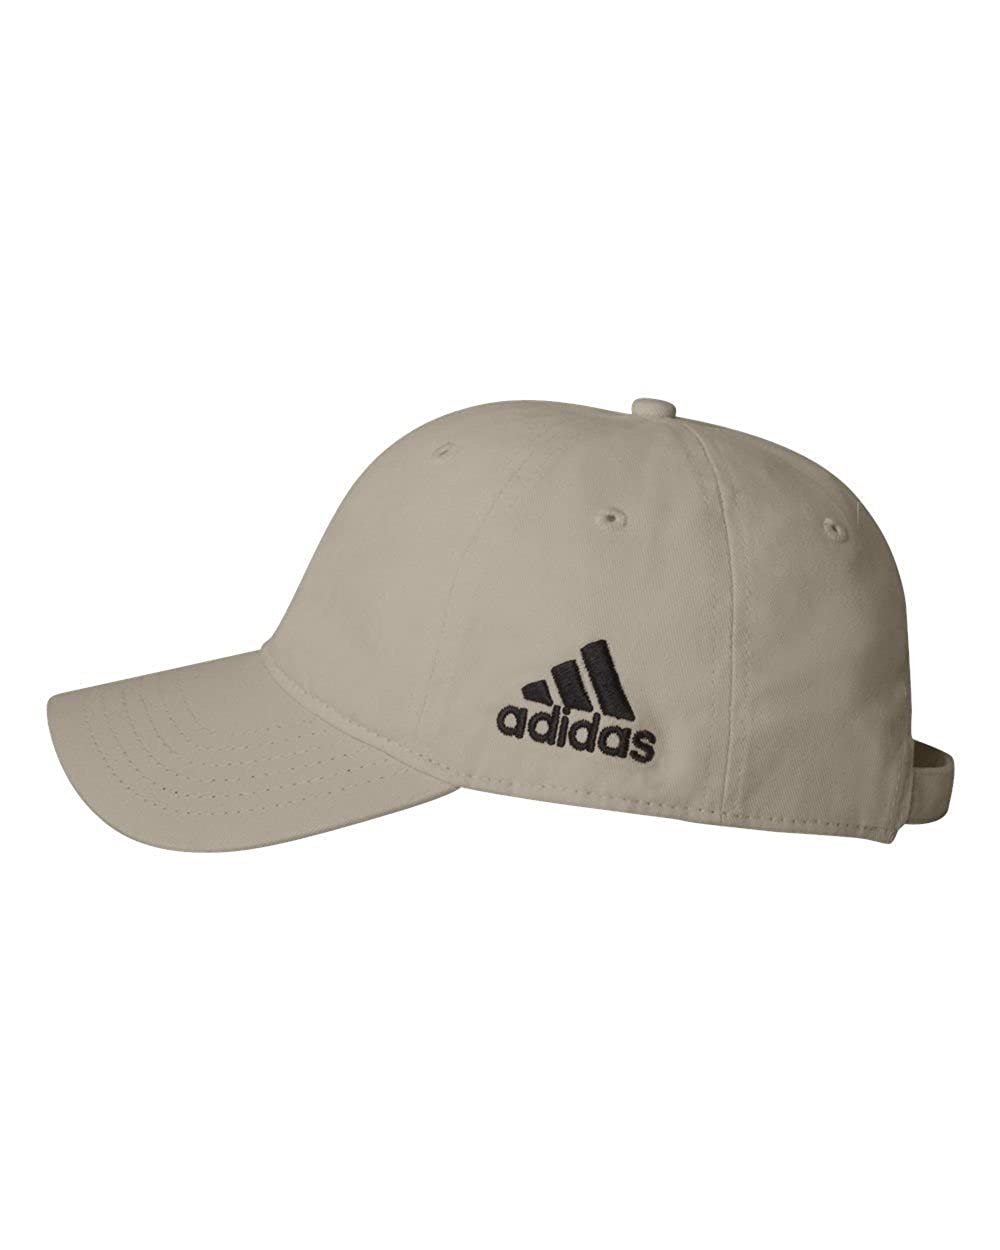 0dcb1836 adidas New Golf Mens Adjustable A12 Cotton Crest Twill Cap ...